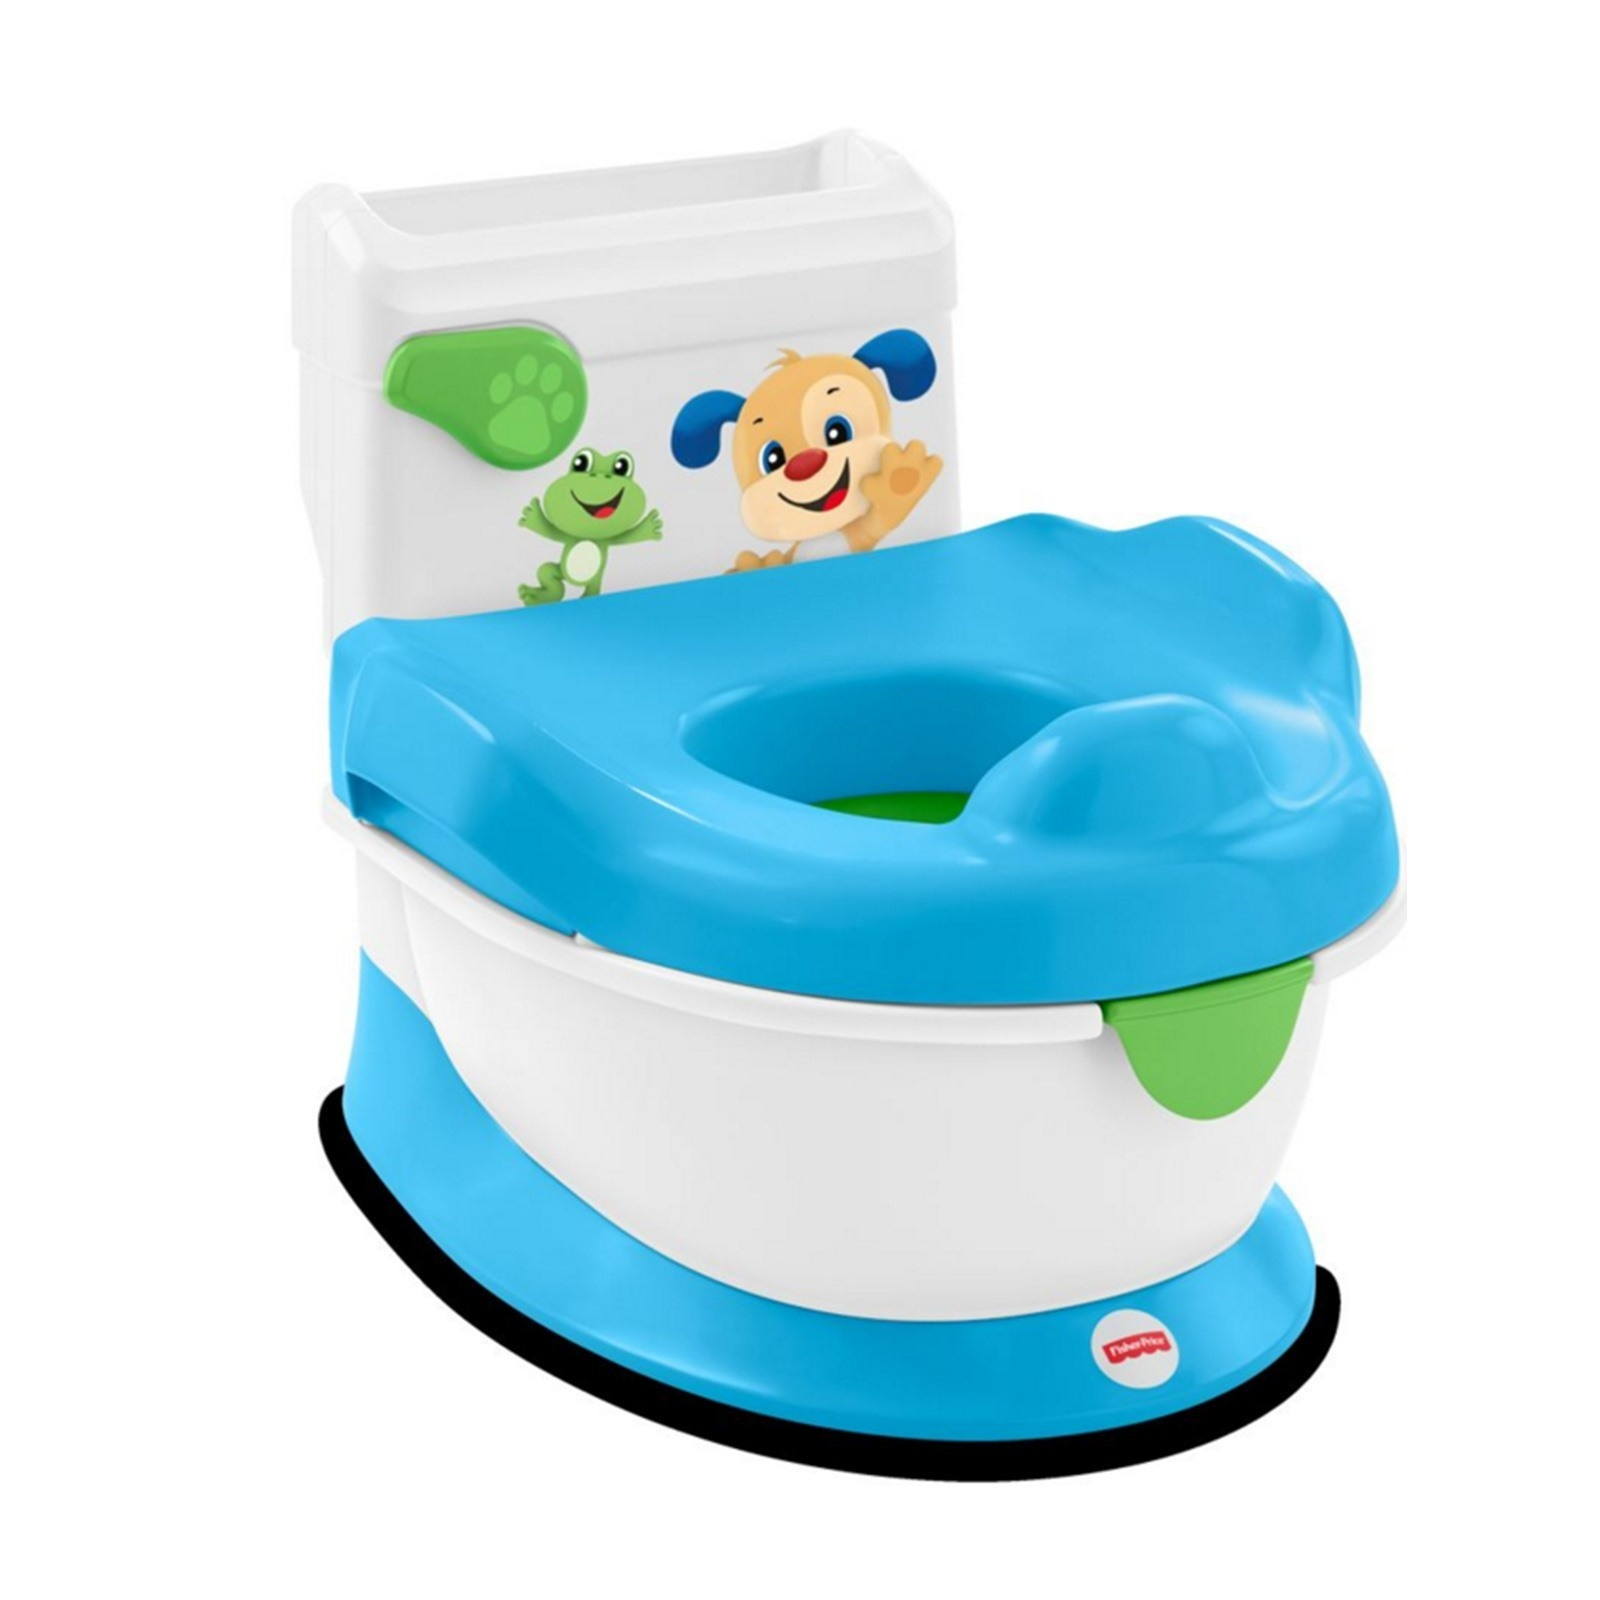 Ebebek Fisher Price Baby Training Toilet Potty Turkish